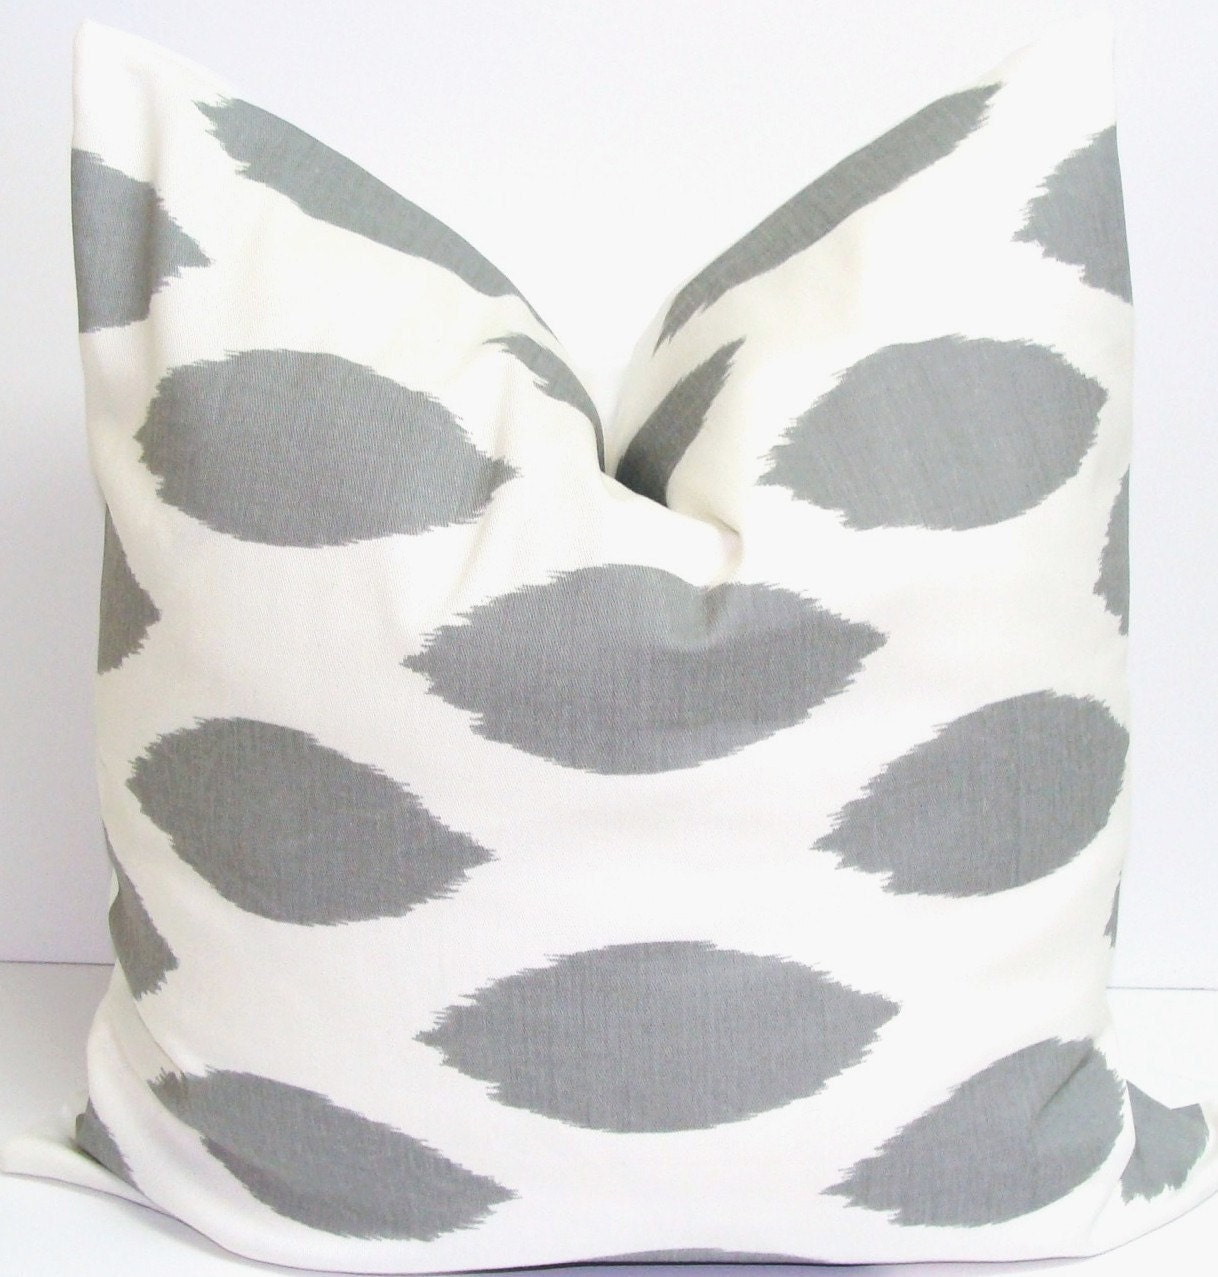 Charcoal Gray Pillow.16x16 inch.Pillow Cover.Printed Fabric Front and Back.Spotted Pillow.Ikat Pillow